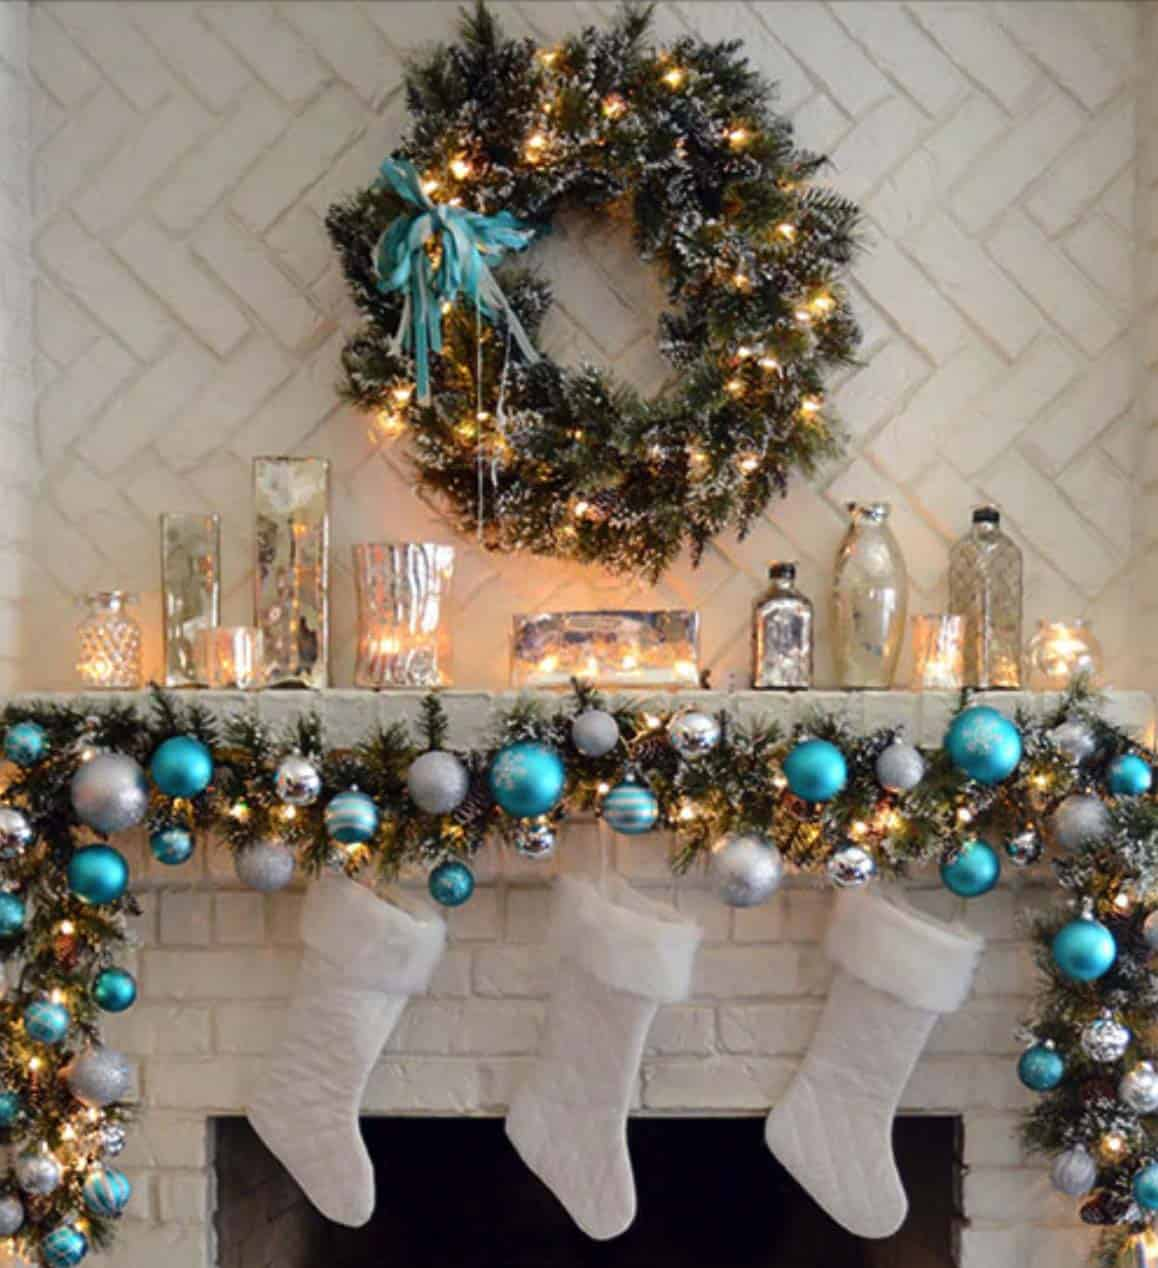 Christmas Mantel Decorating Ideas-51-1 Kindesign